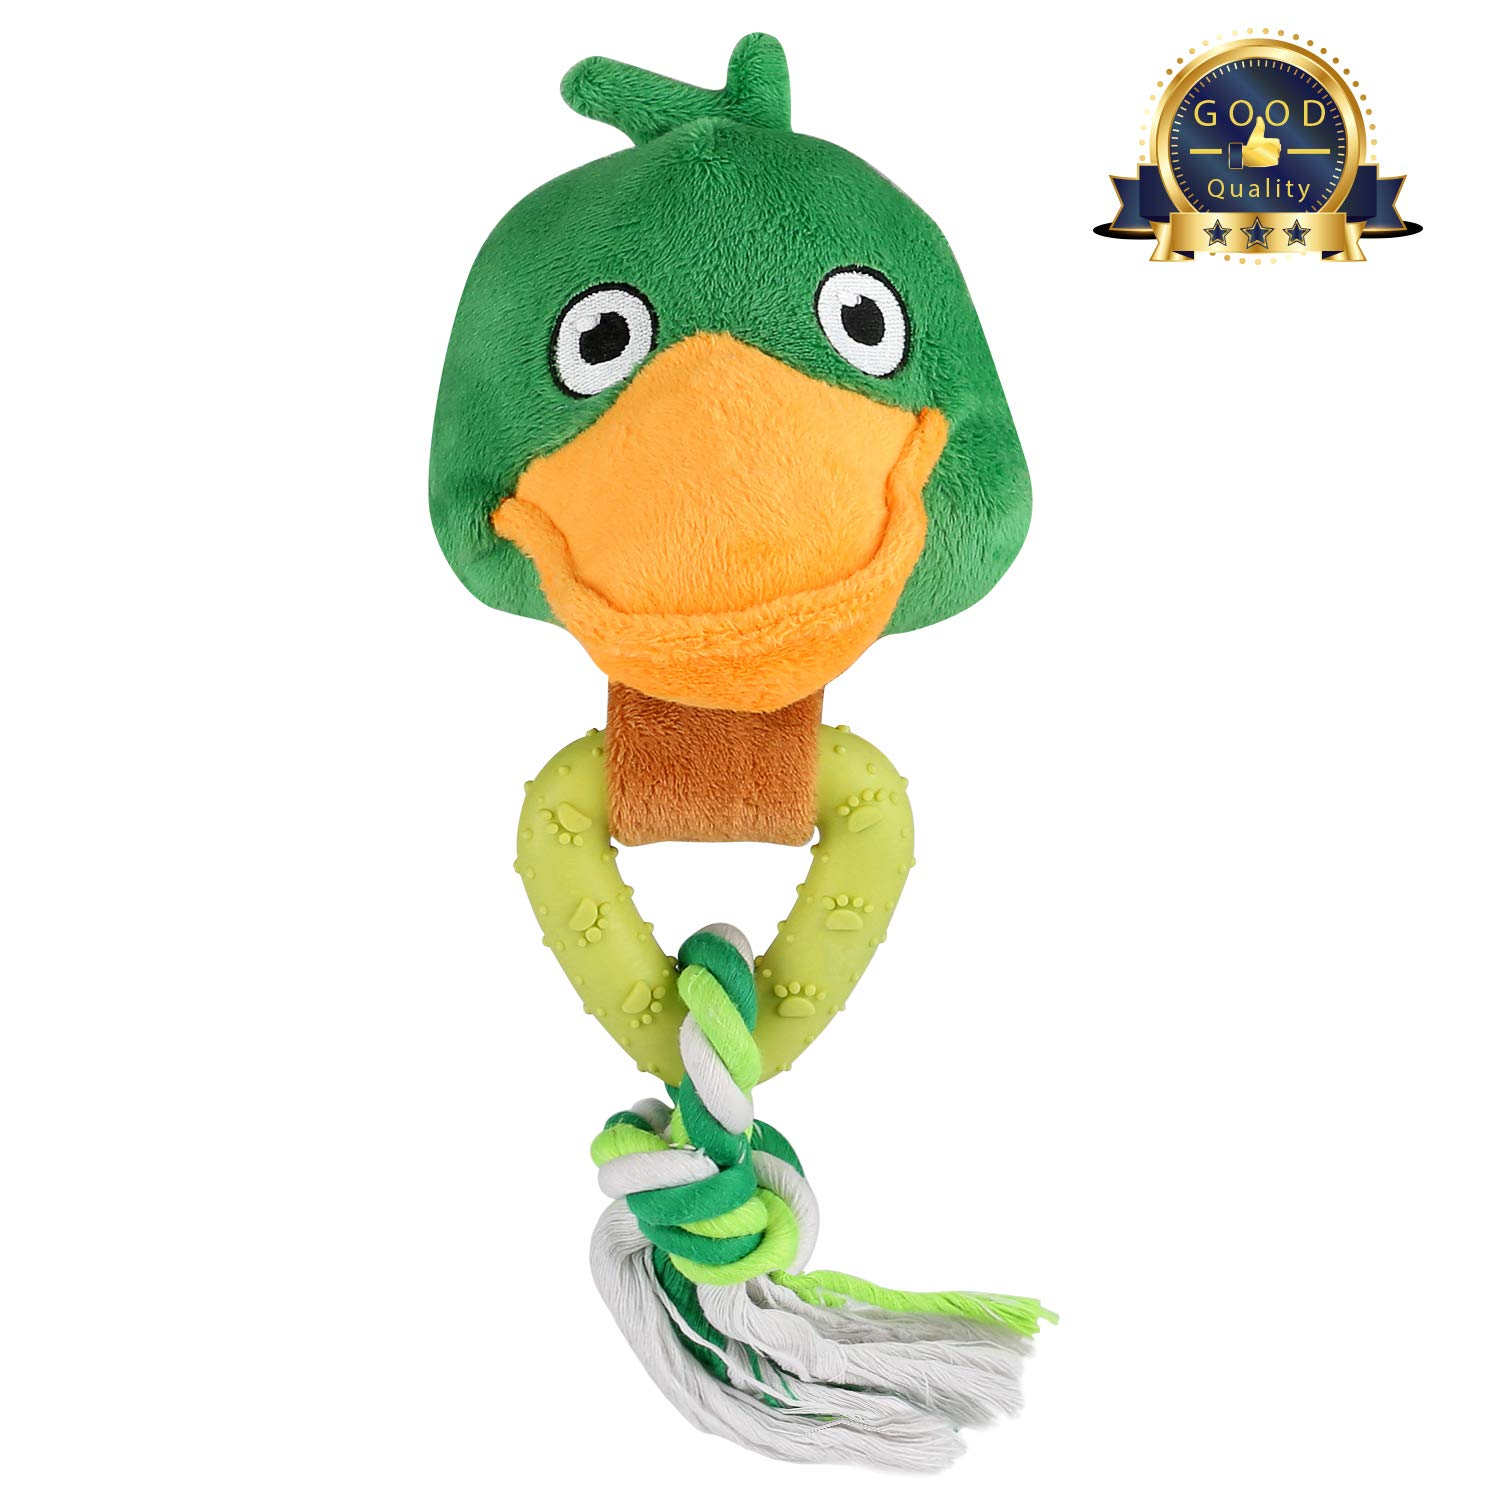 Airsspu Dog Chew Toys, Dog Squeaky Plush Toys Cute Duck/Chicken Design, Interactive Durable Dog Squeaky Textured Chew Toy Small Medium Dogs, Non Toxic Cleans Teeth (Green-XY)